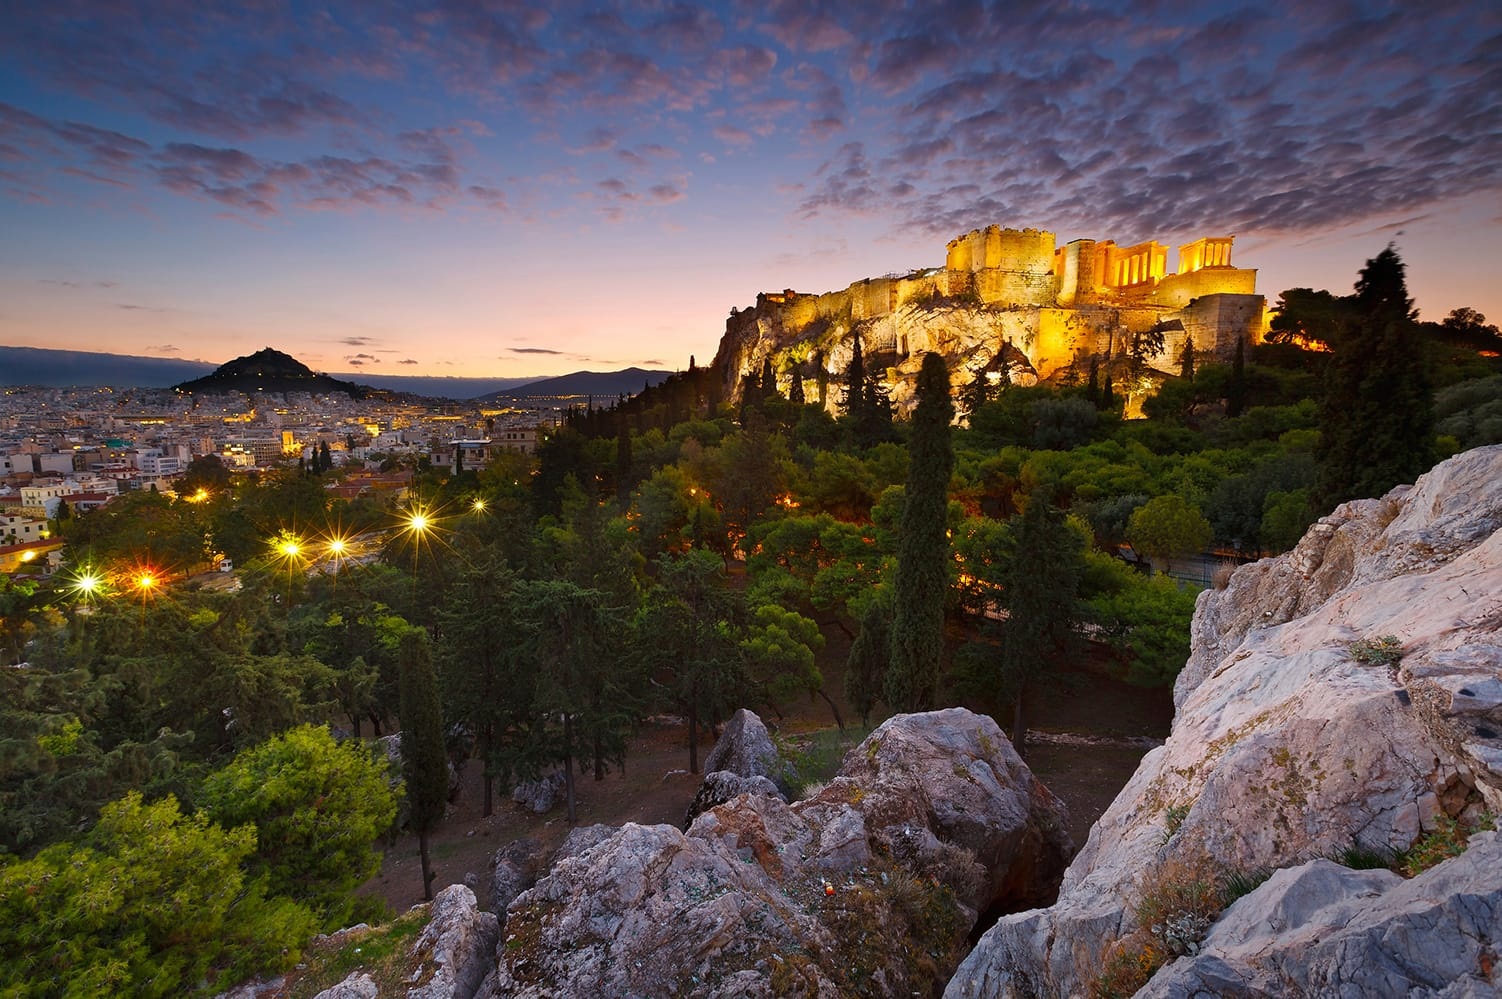 Sunset view of Acropolis and Lycabettus Hill from Areopagus hill in Athens, Greece